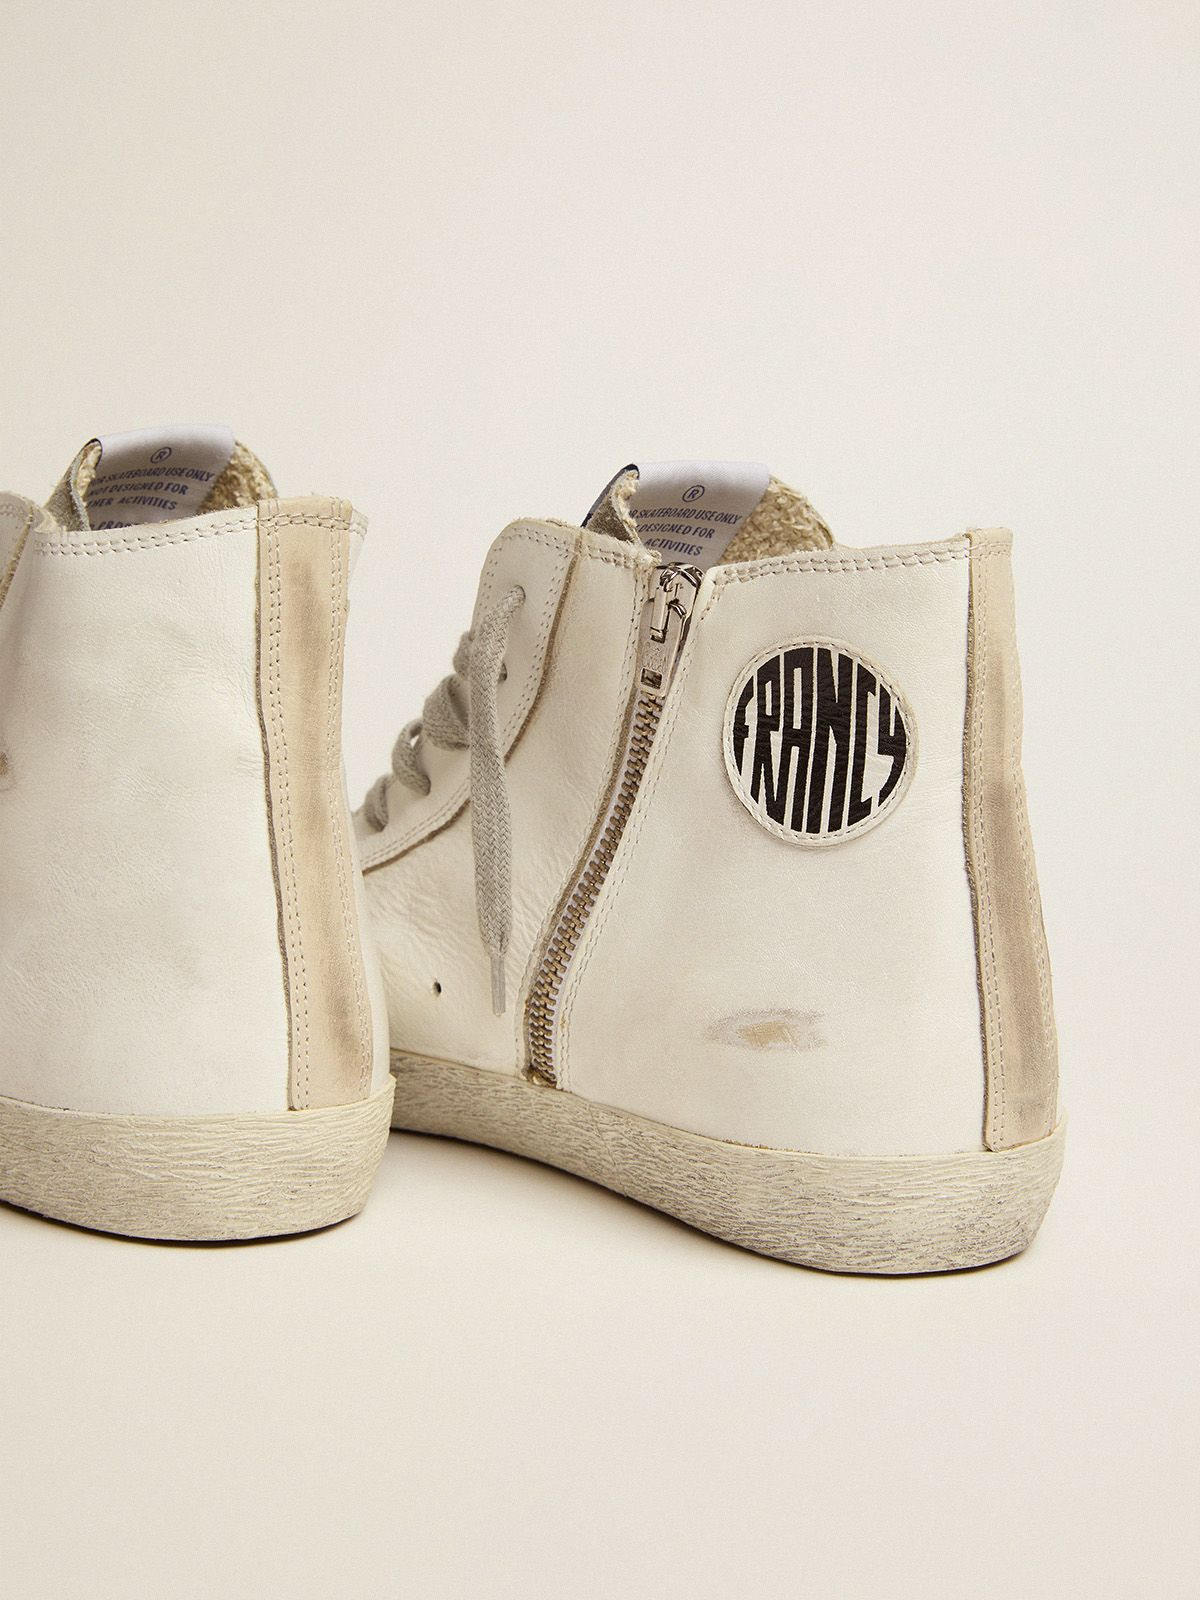 Golden Goose - Francy sneakers in leather with silver suede star in